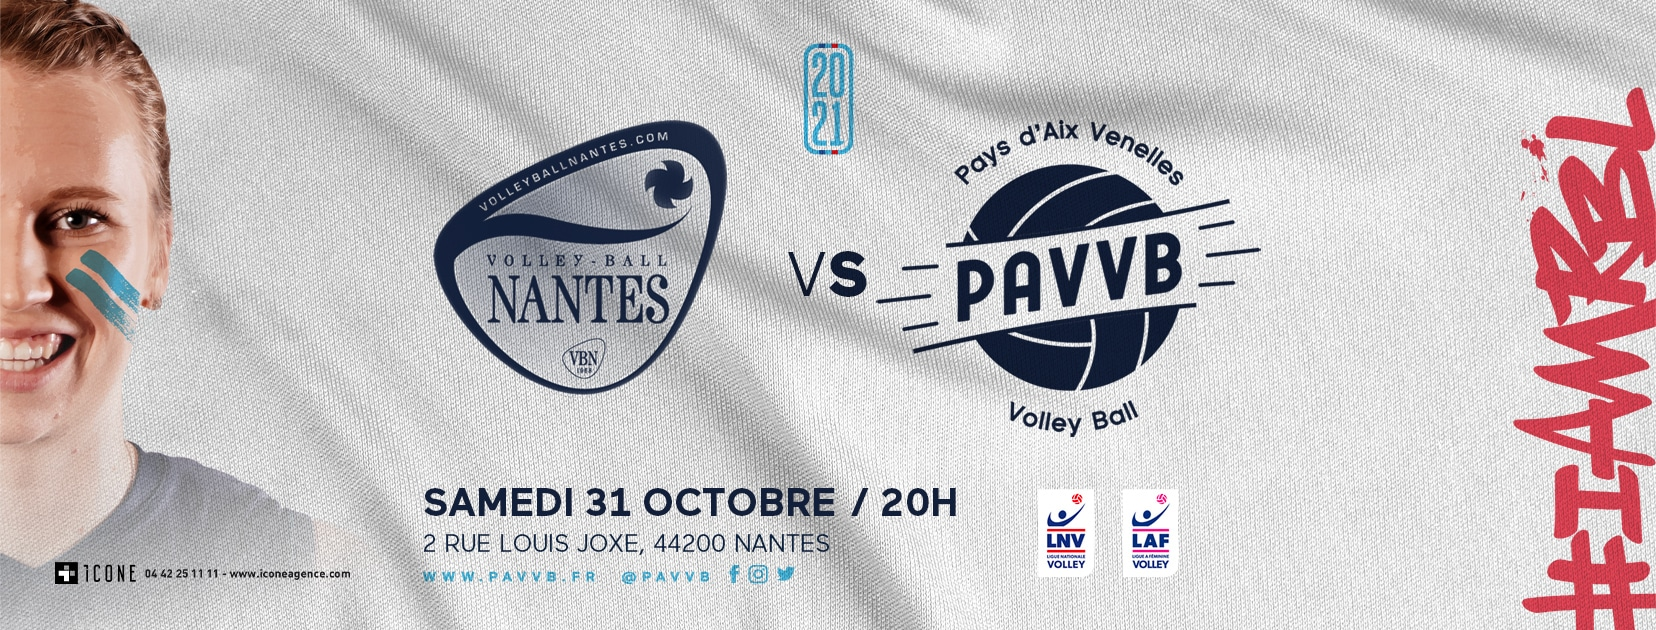 Pays d'Aix Venelles Volley Ball